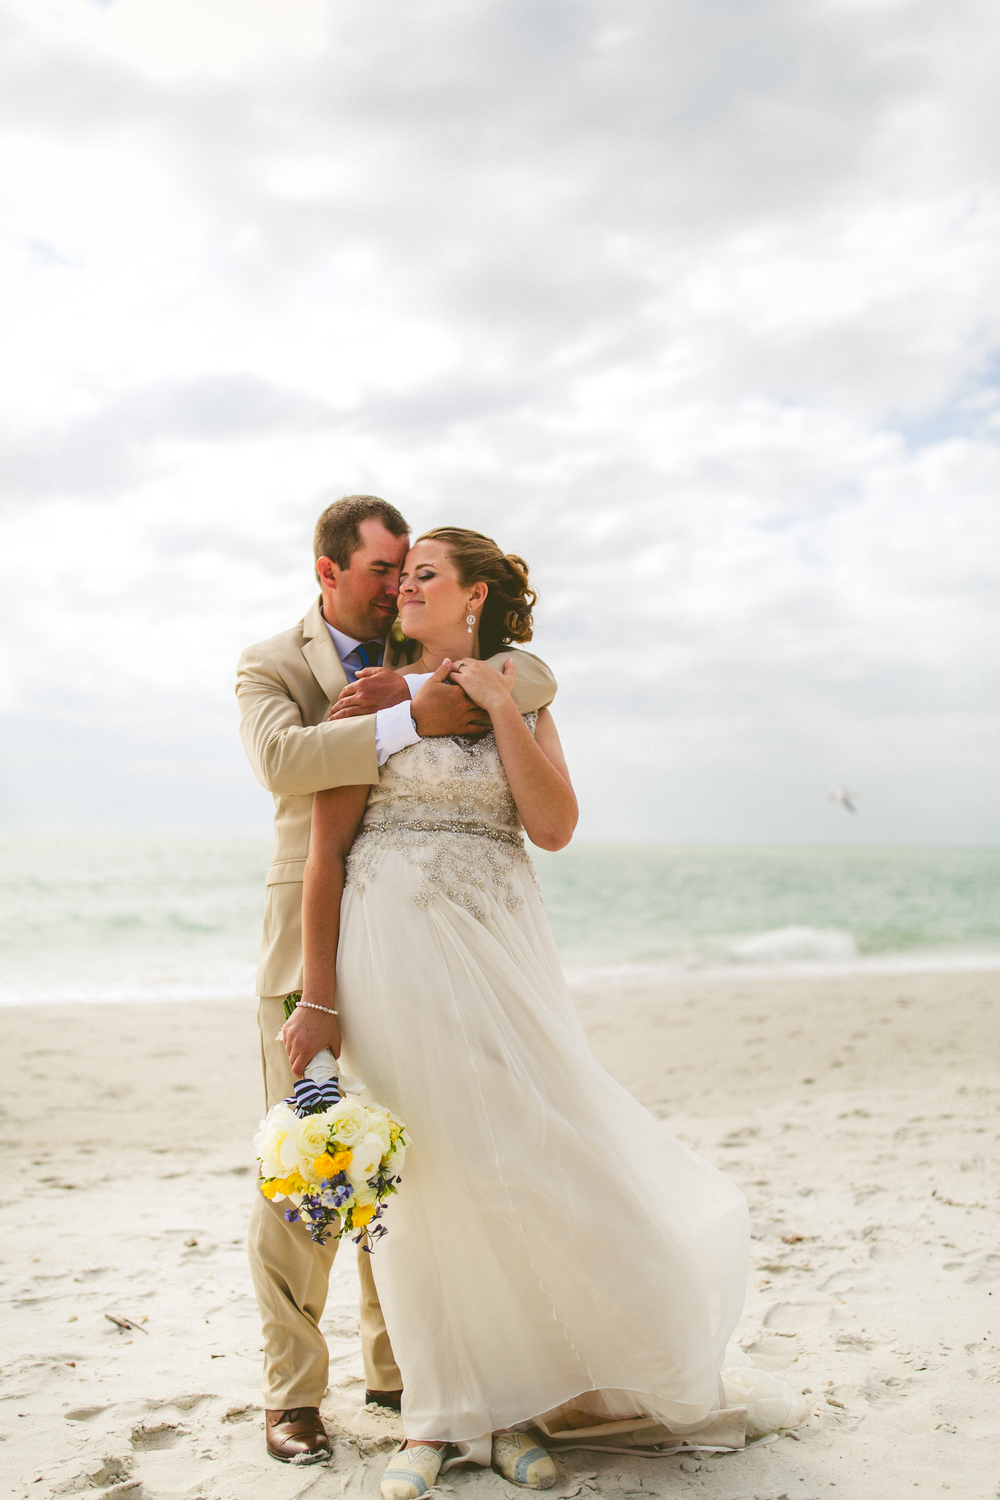 Liz & Clint {Real Wedding} | Just Save the Date | Photo Credit: Concept Photography